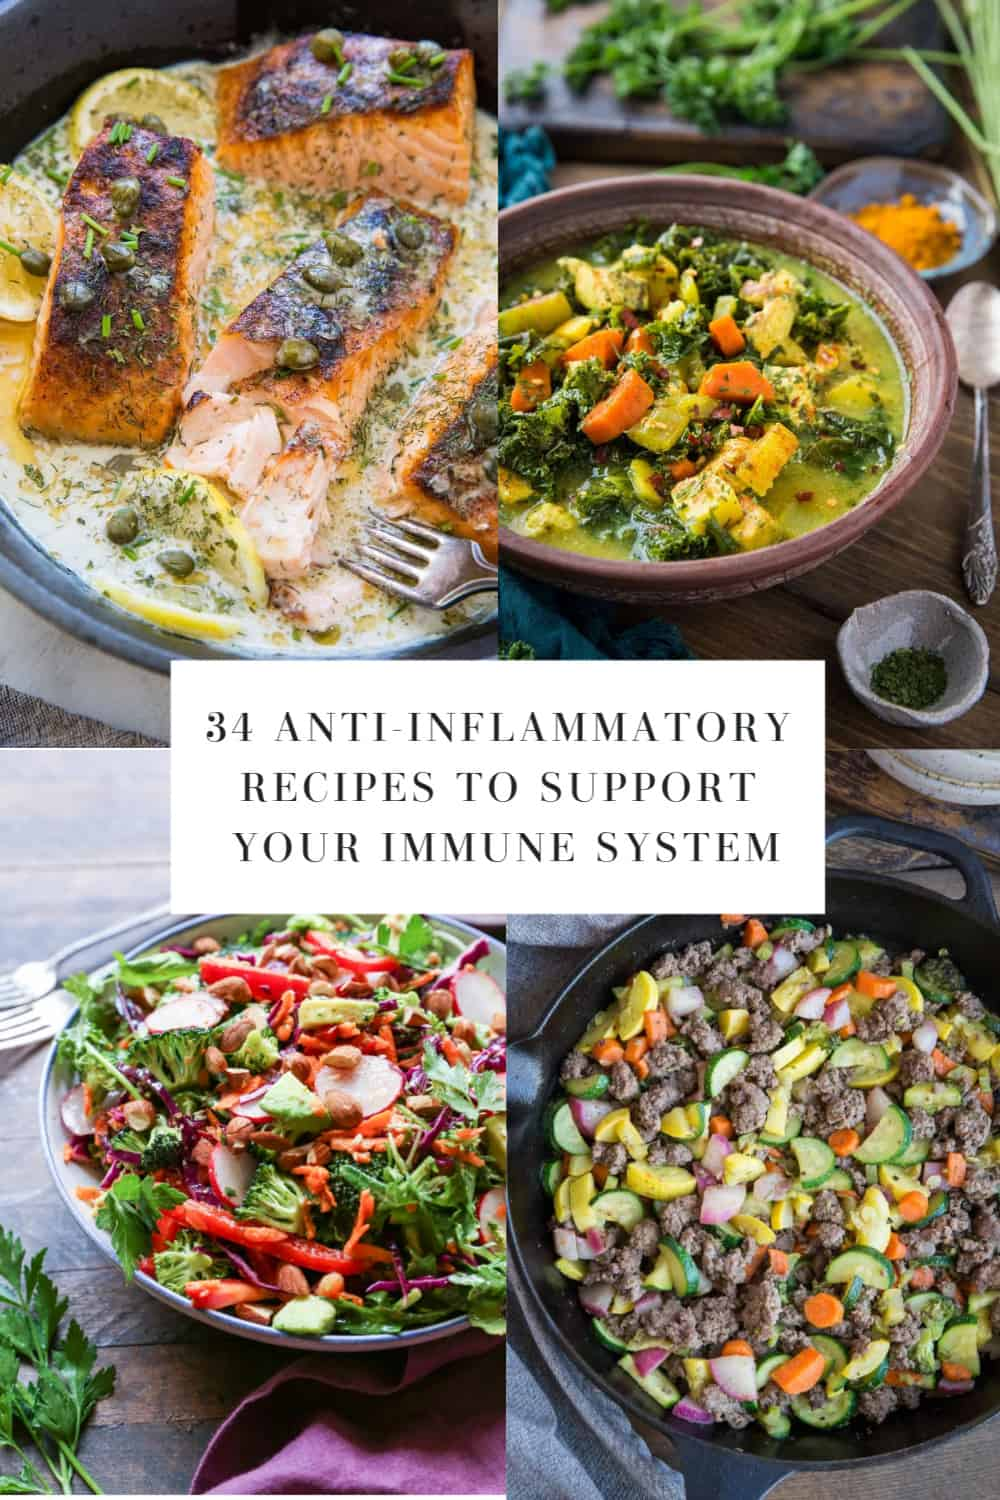 32 Anti-Inflammatory Recipes to Help Boost Your Immune System | TheRoastedRoot.net #glutenfree #paleo #keto #autoimmunity #ibs #guthealth